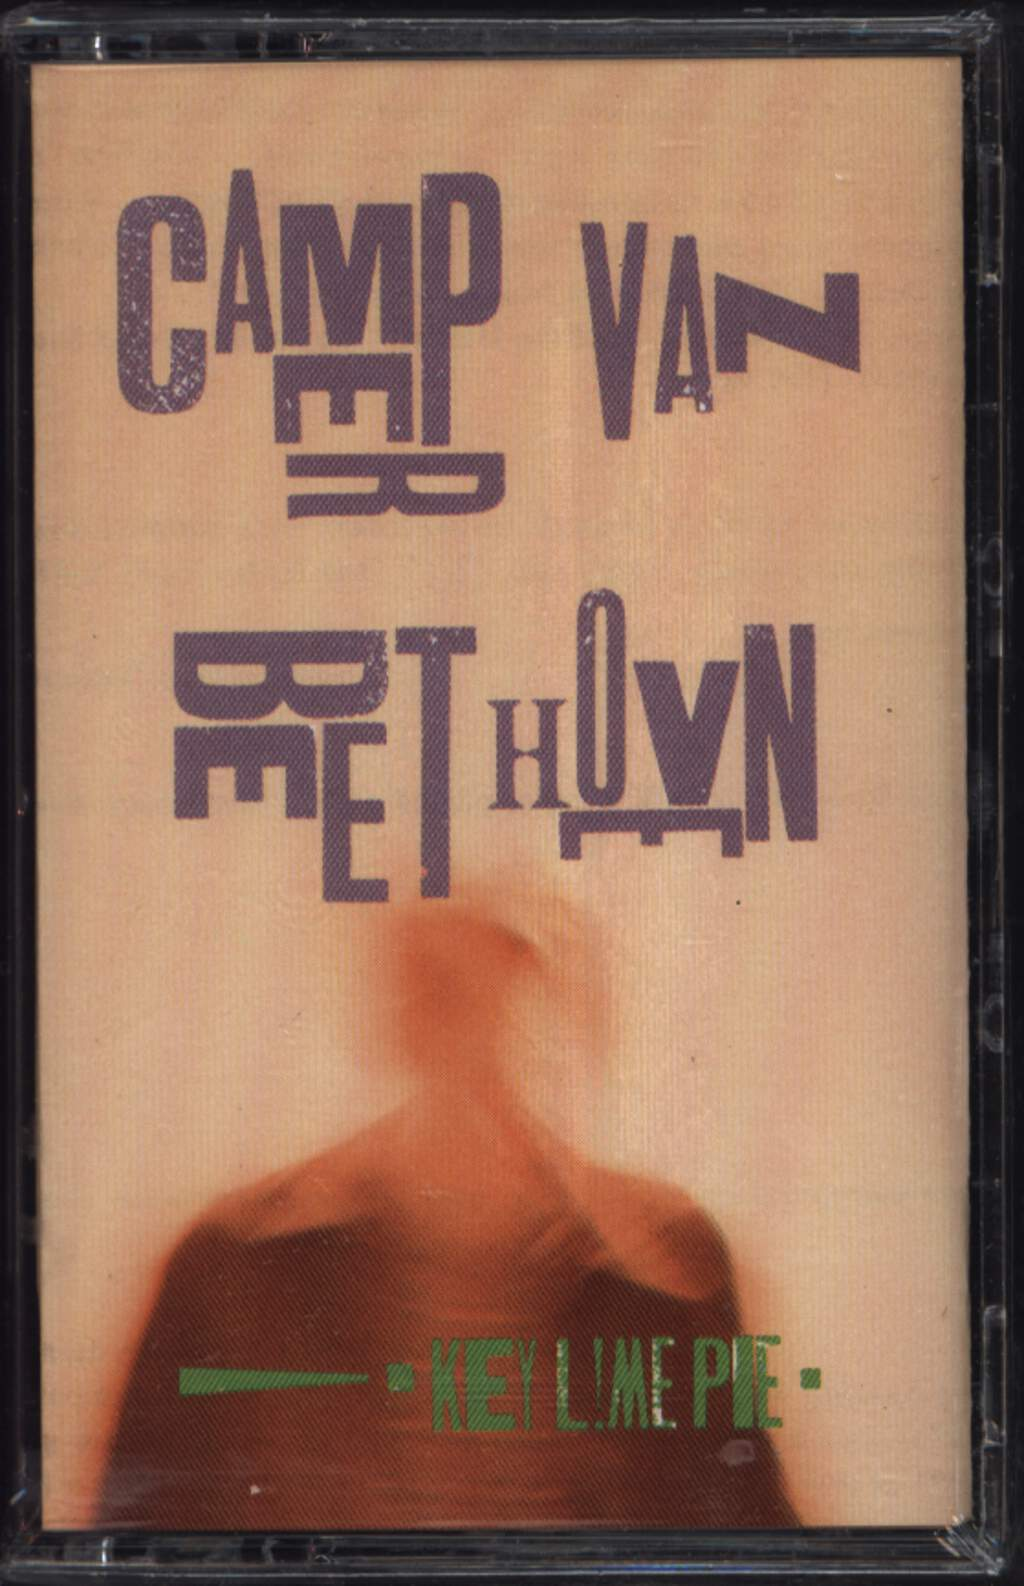 Camper Van Beethoven: Key Lime Pie, Tape